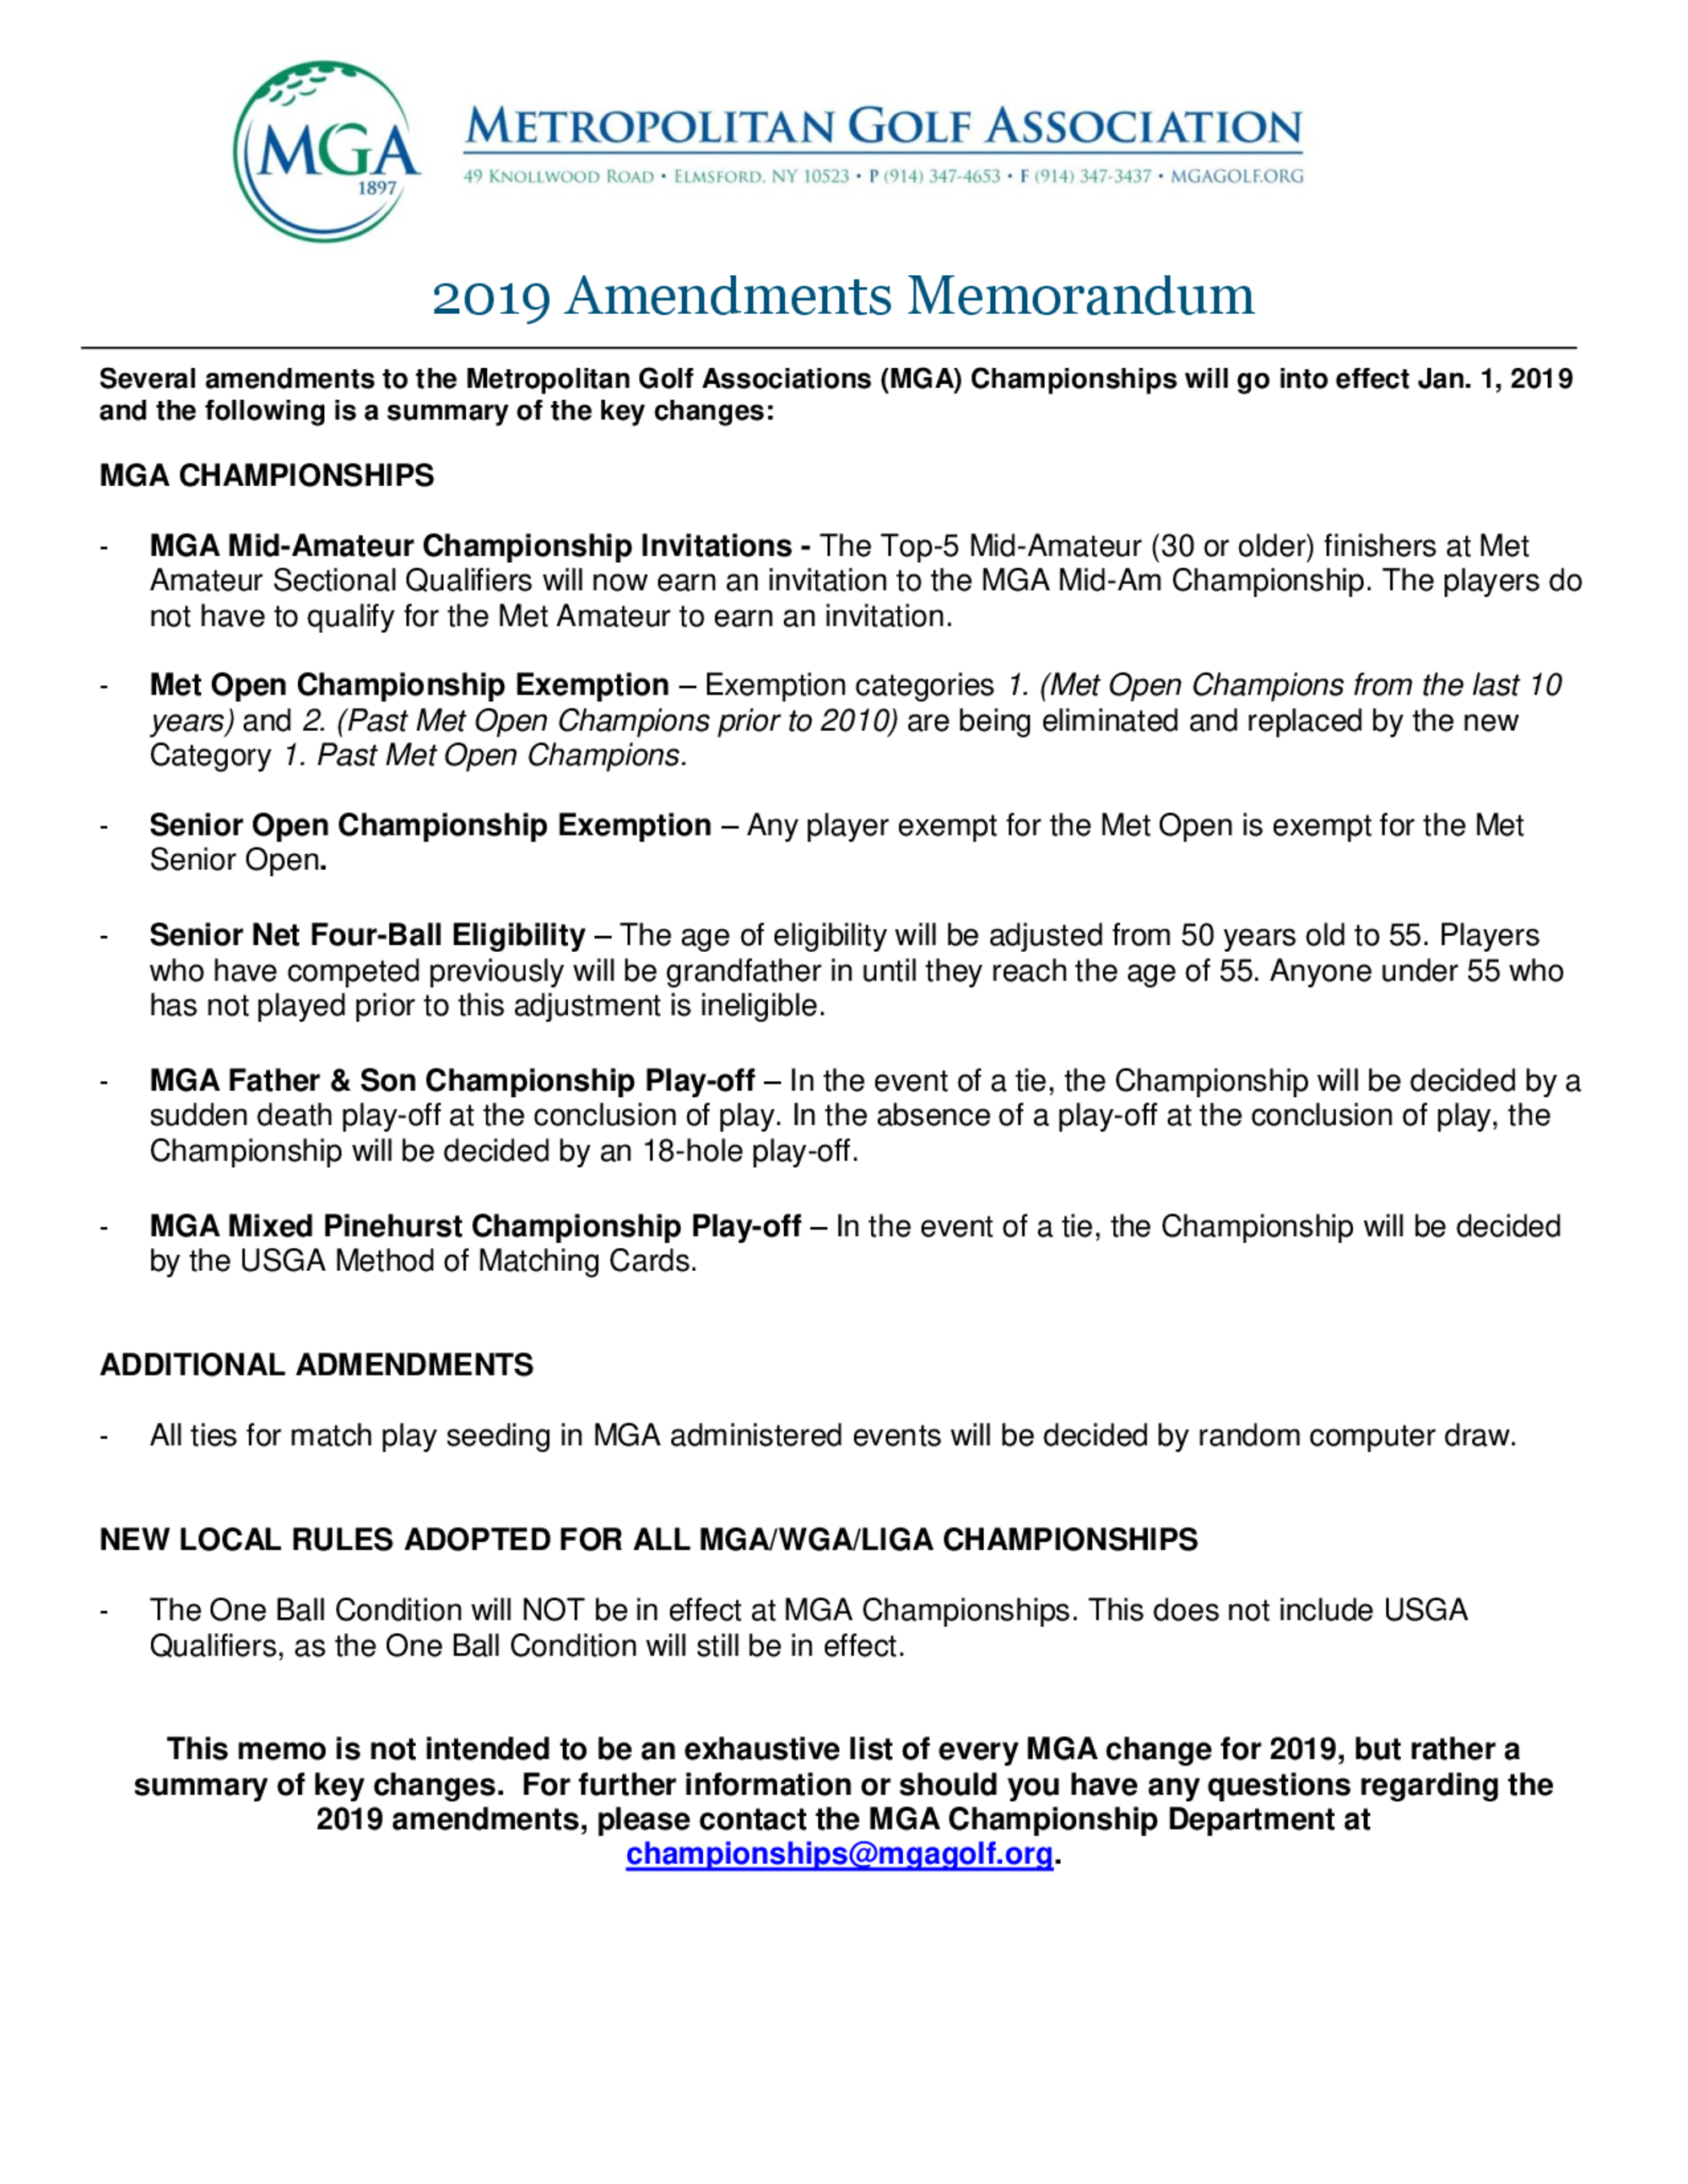 Mga 2019 amendments memorandum 1